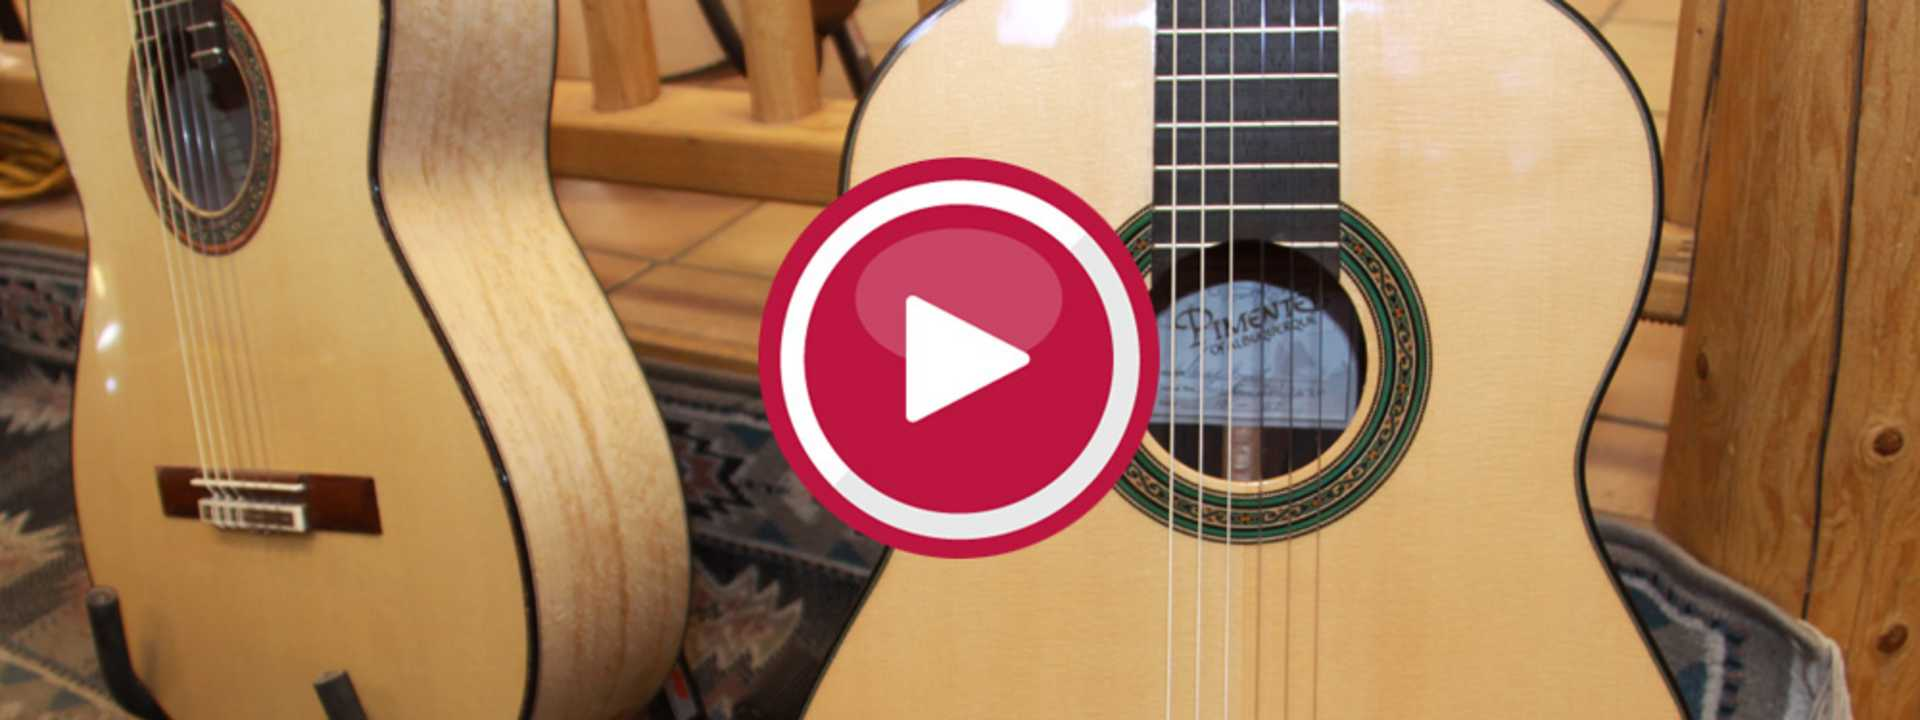 Pimentel Guitars - New Mexico True Certified